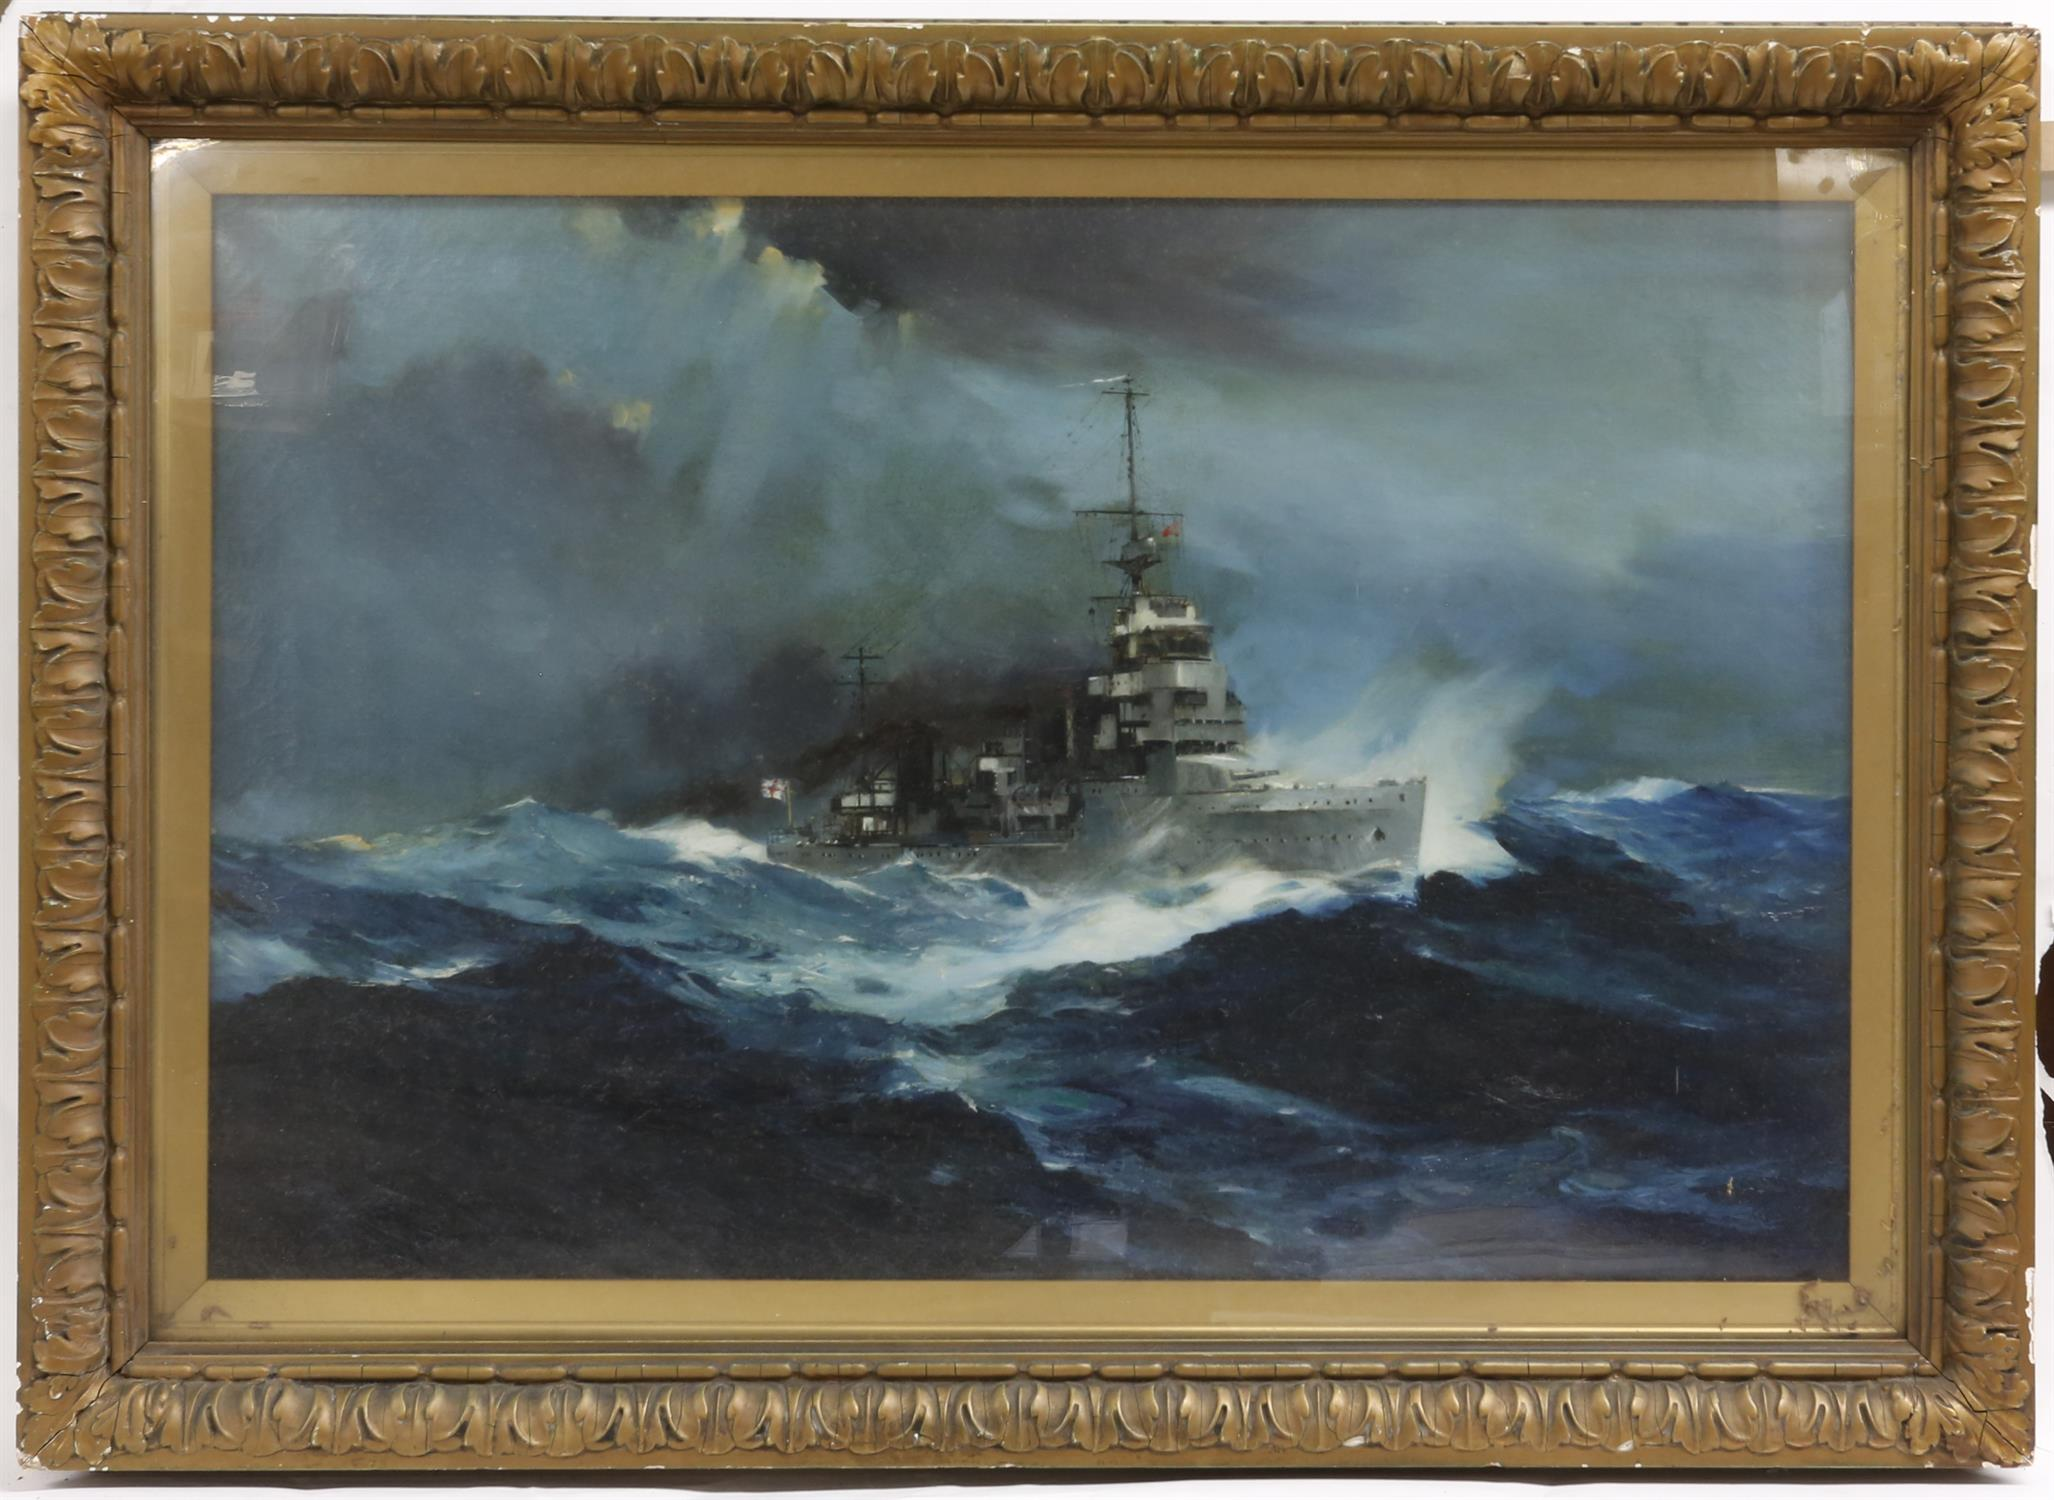 § Frank Henry Mason (British, 1876-1965). Frigate in stormy seas, circa 1920's, signed, - Image 2 of 2